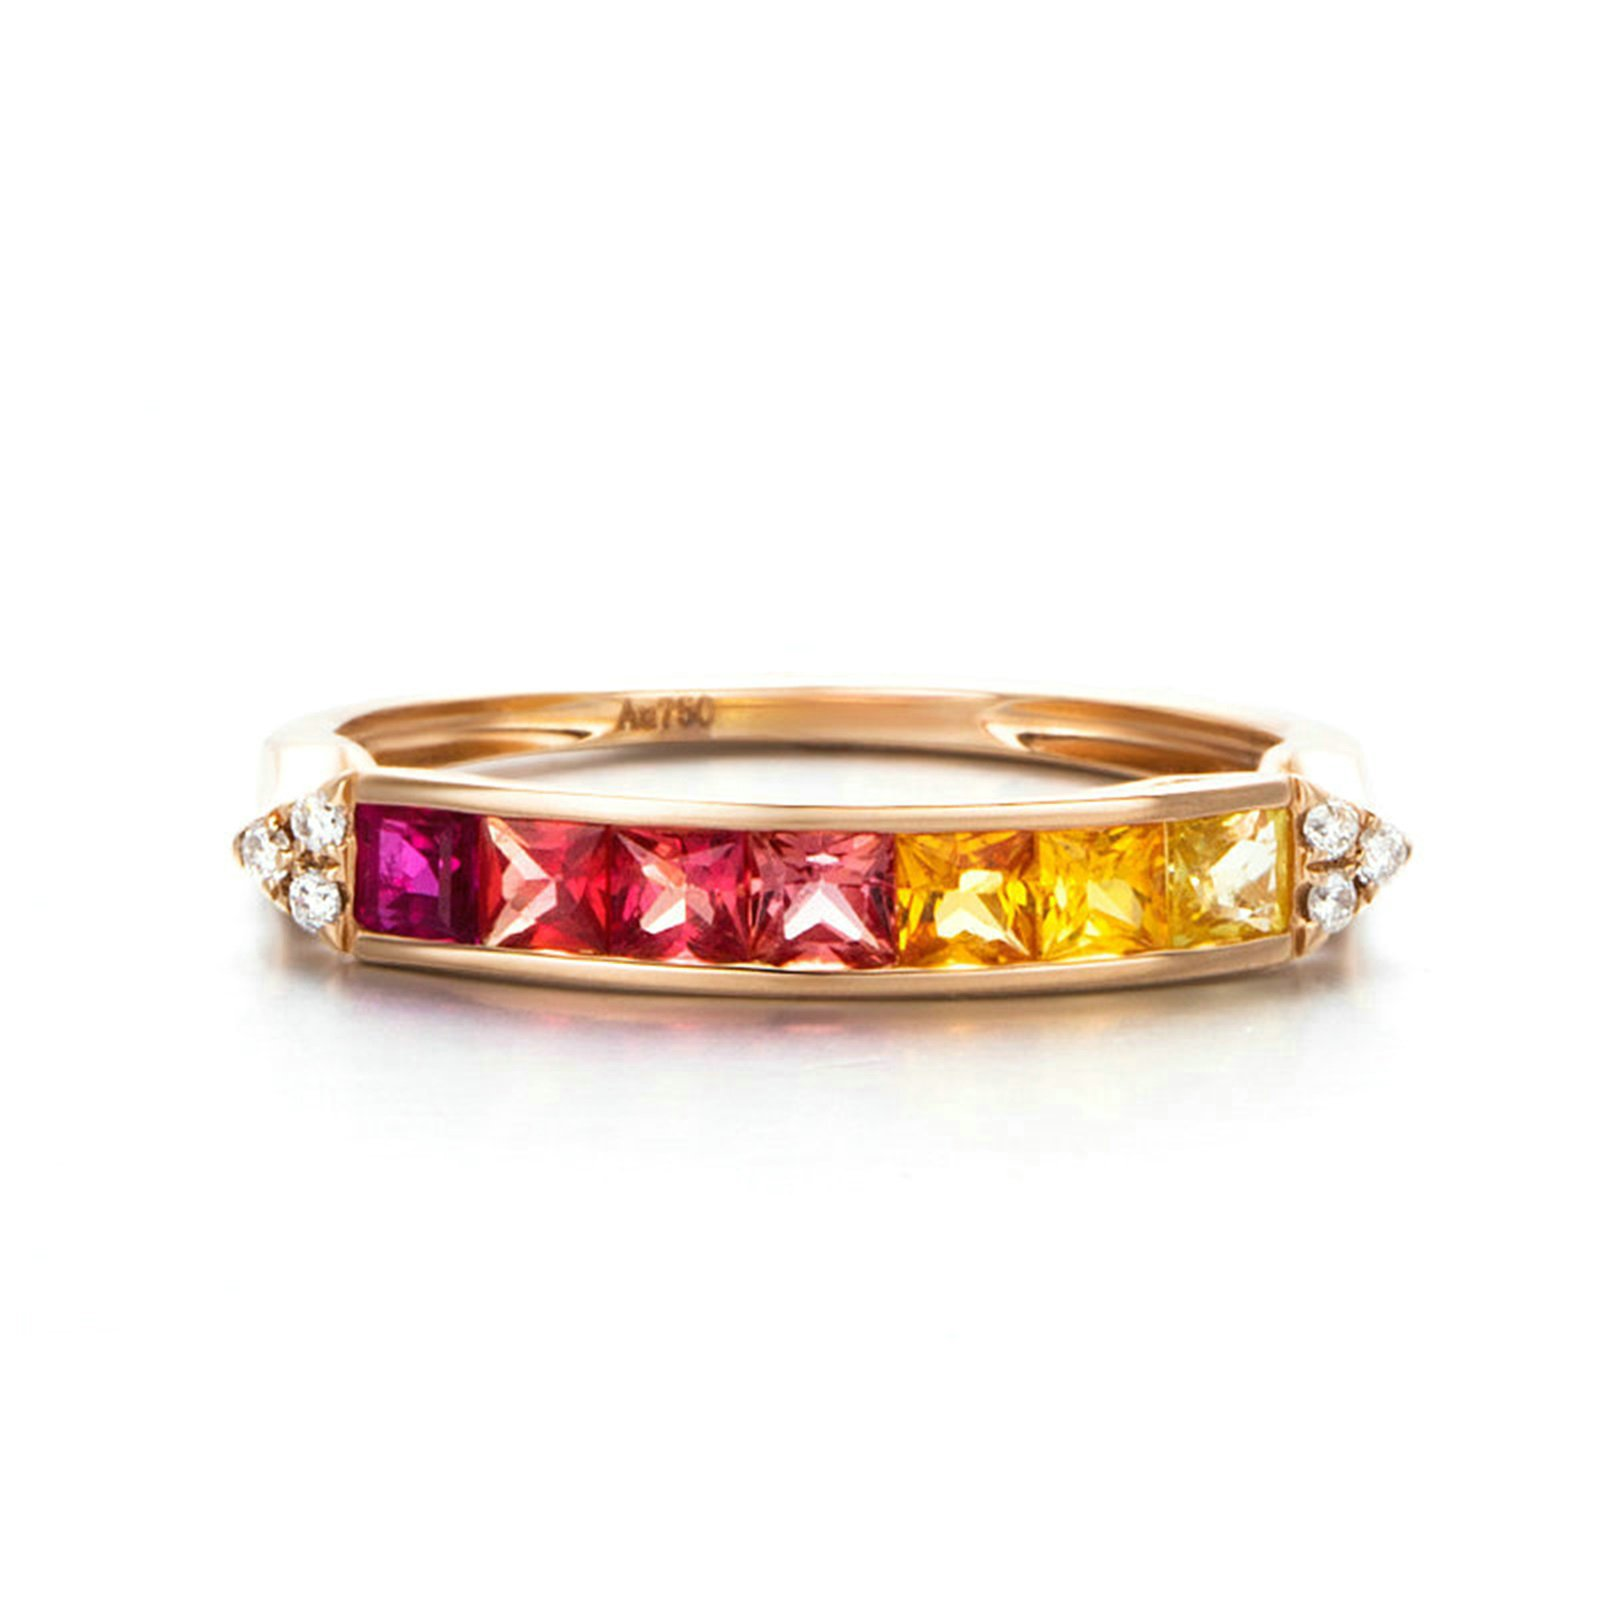 18K Gold Ring(Au750),0.9Ct Square Cut Colorful Gemstone Ring Wedding Engagement Ring for Women Bride Size 7